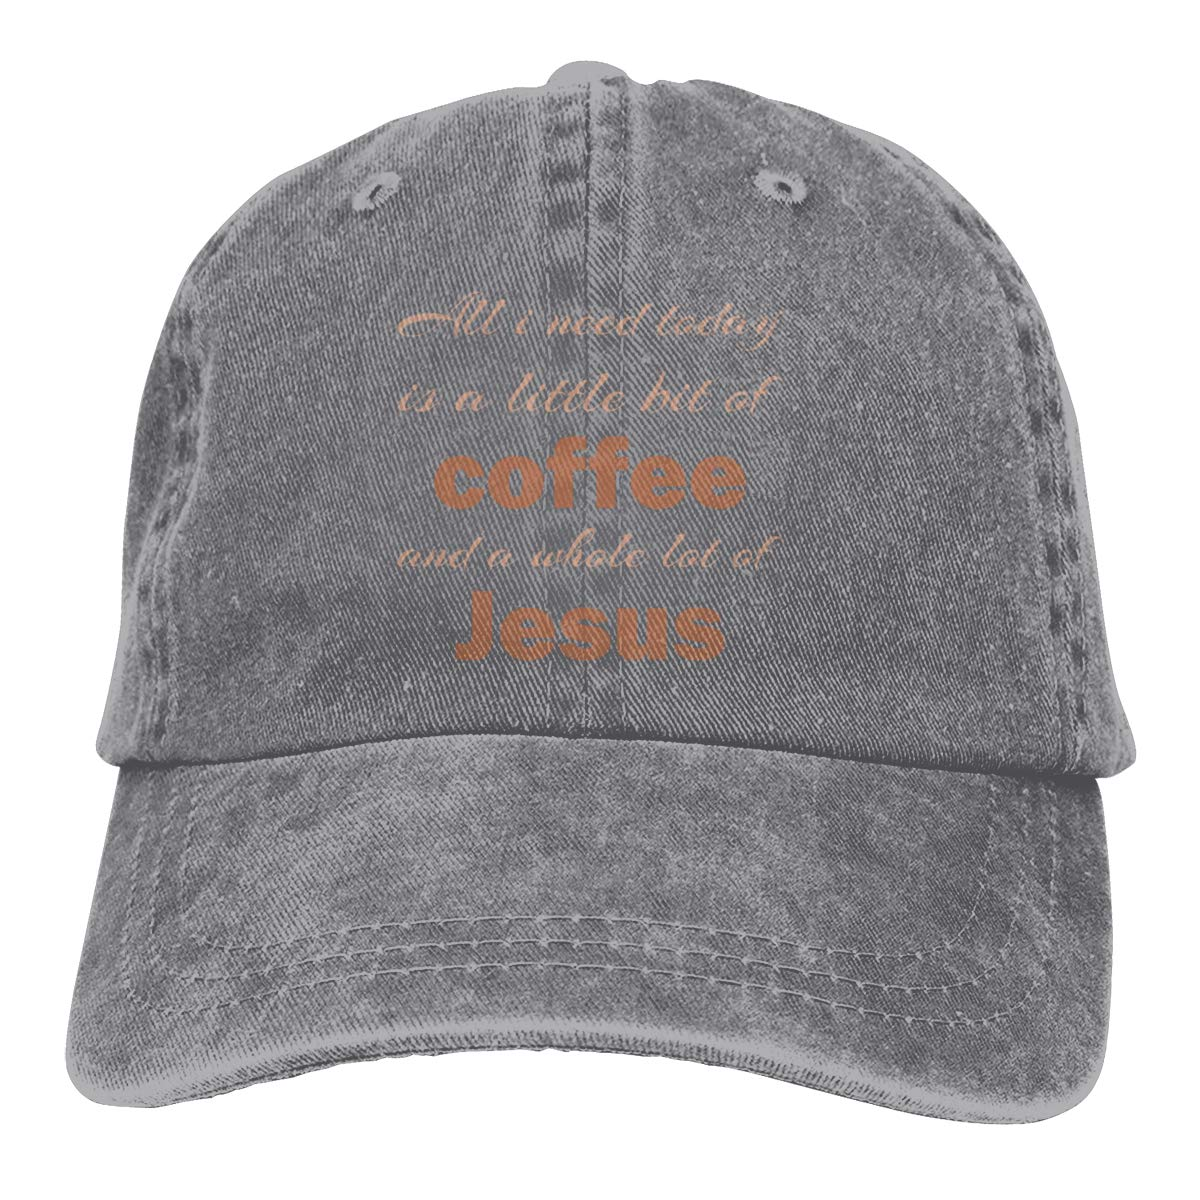 All I Need Today is A Little Coffee and A Whole Lot of Jesus Cowboy Cap Unisex